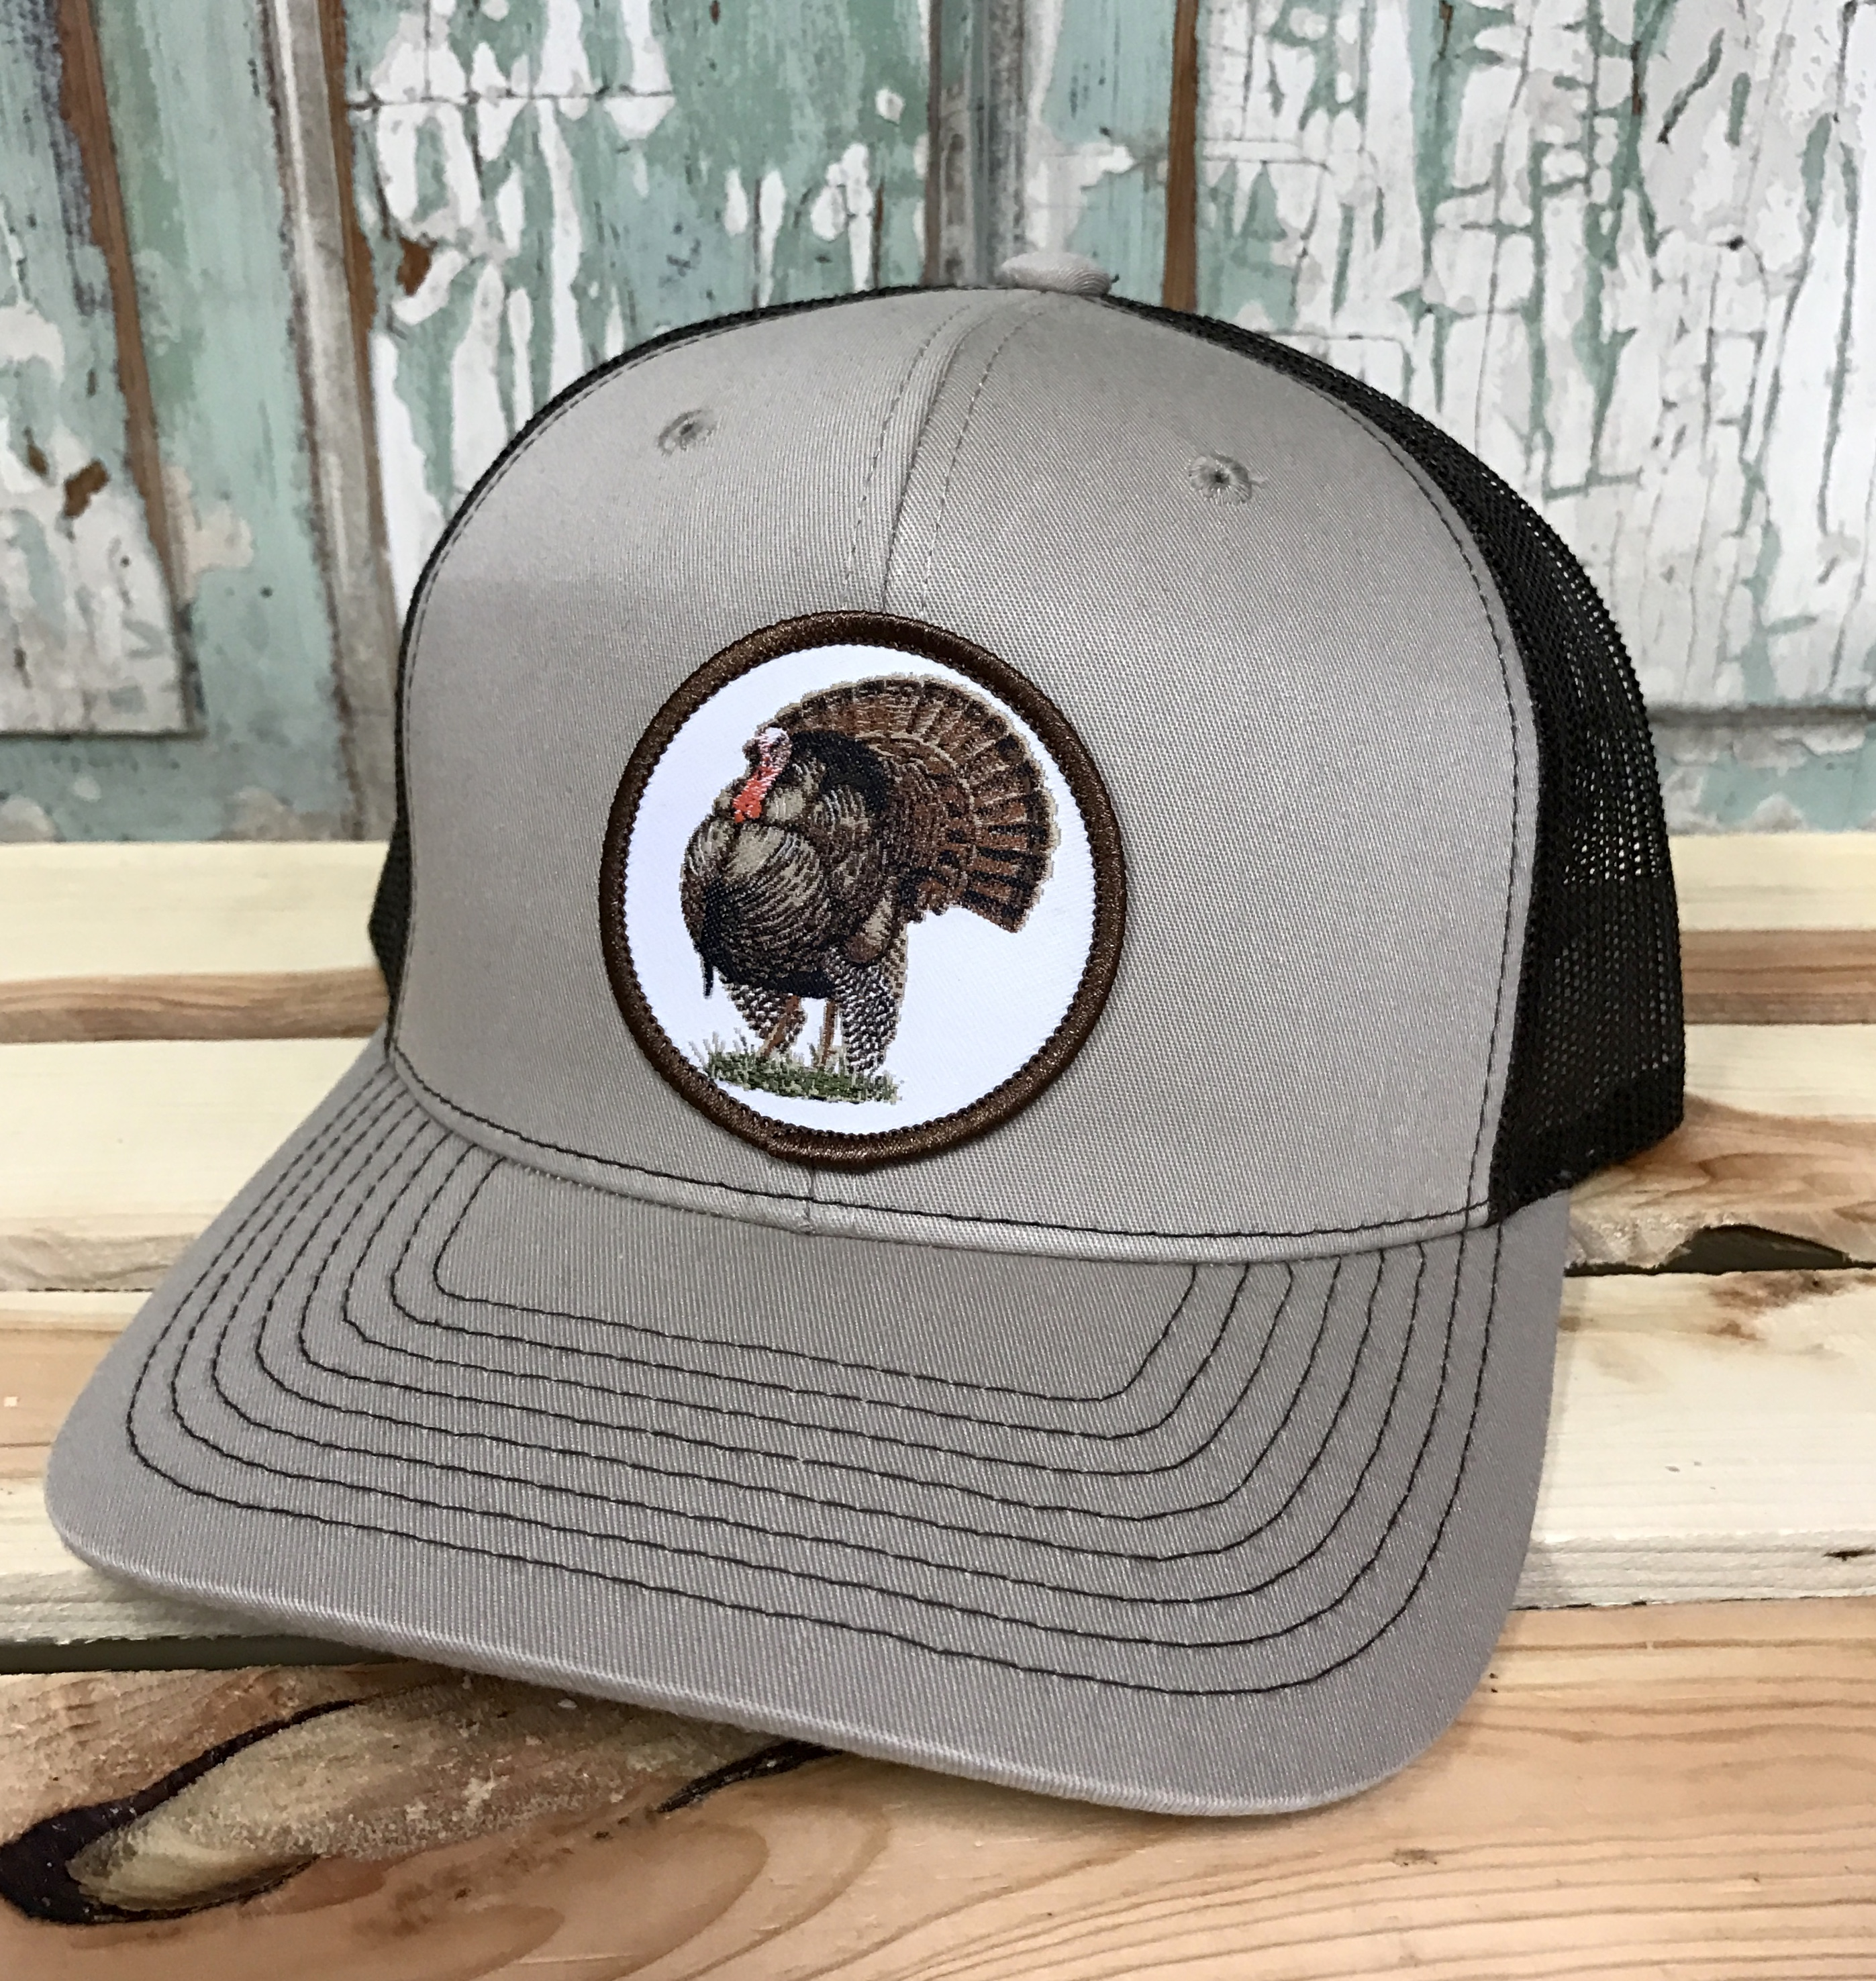 3d6d9e7c270fb AG Outfitters Turkey Patch Trucker Hat Tan Coffee - AG Outfitters NC